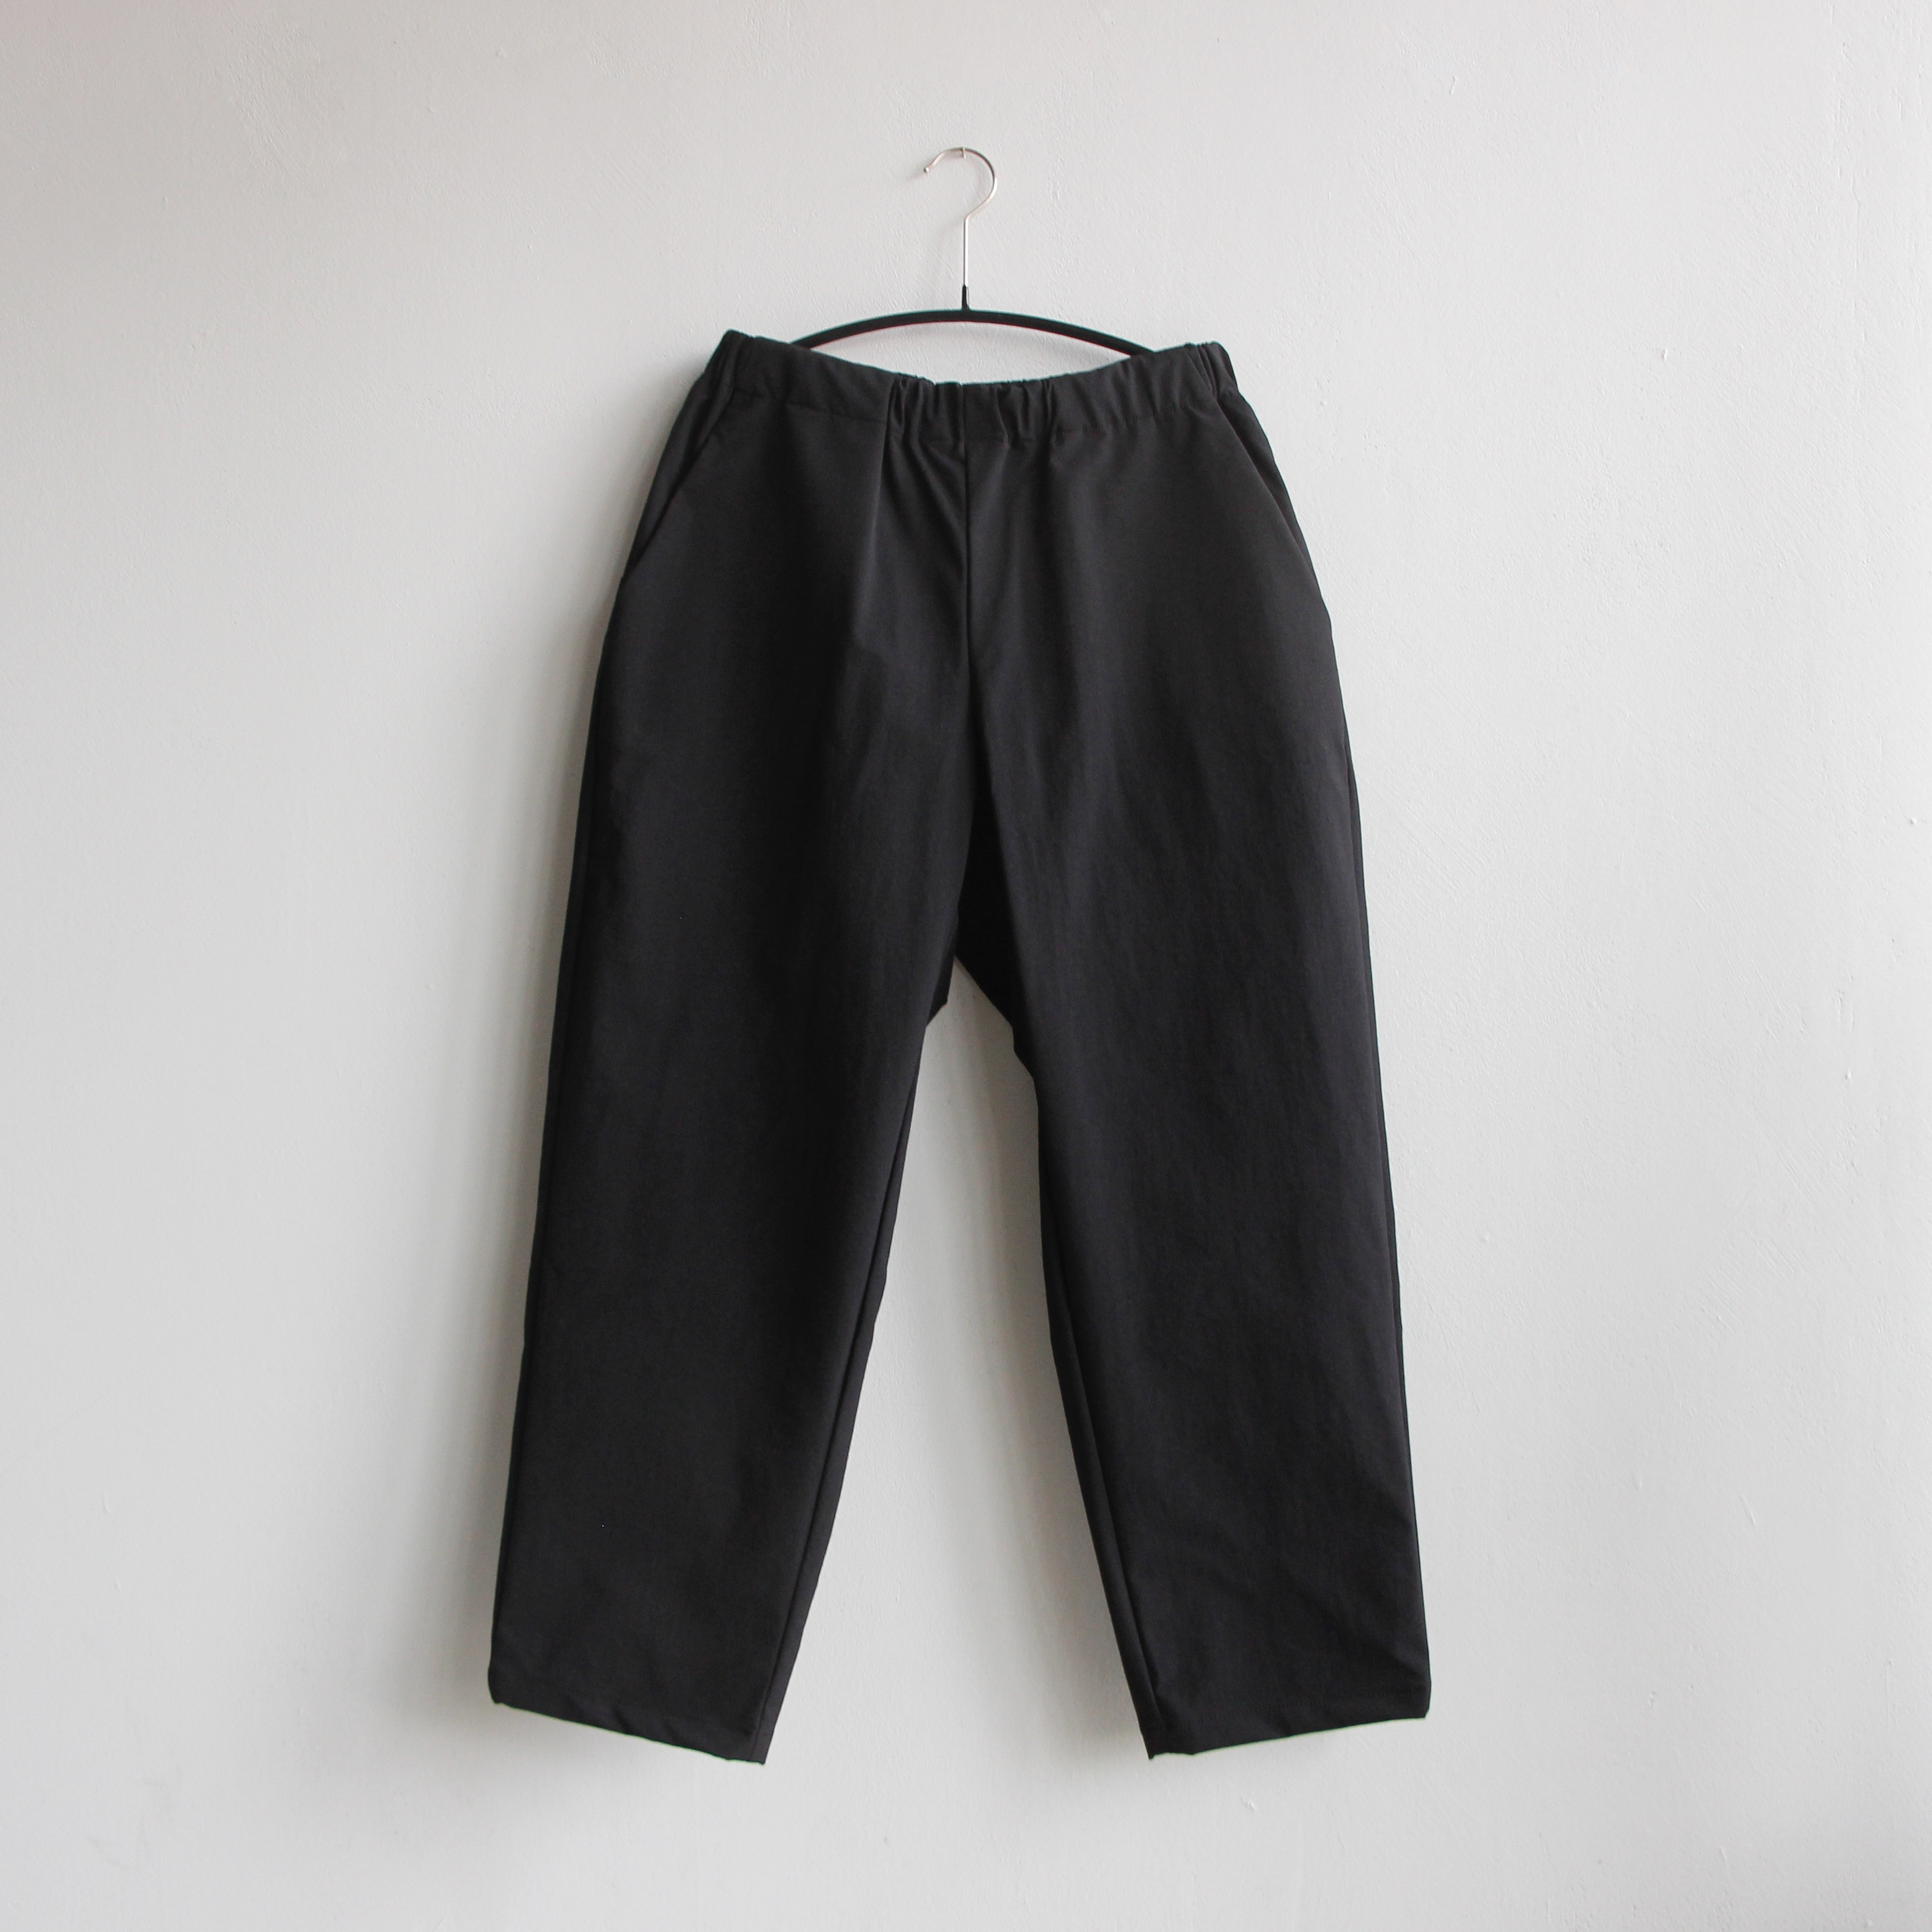 《MOUNTEN. 2021SS》double cloth stretch pants / black / size1(155-165cm程度)